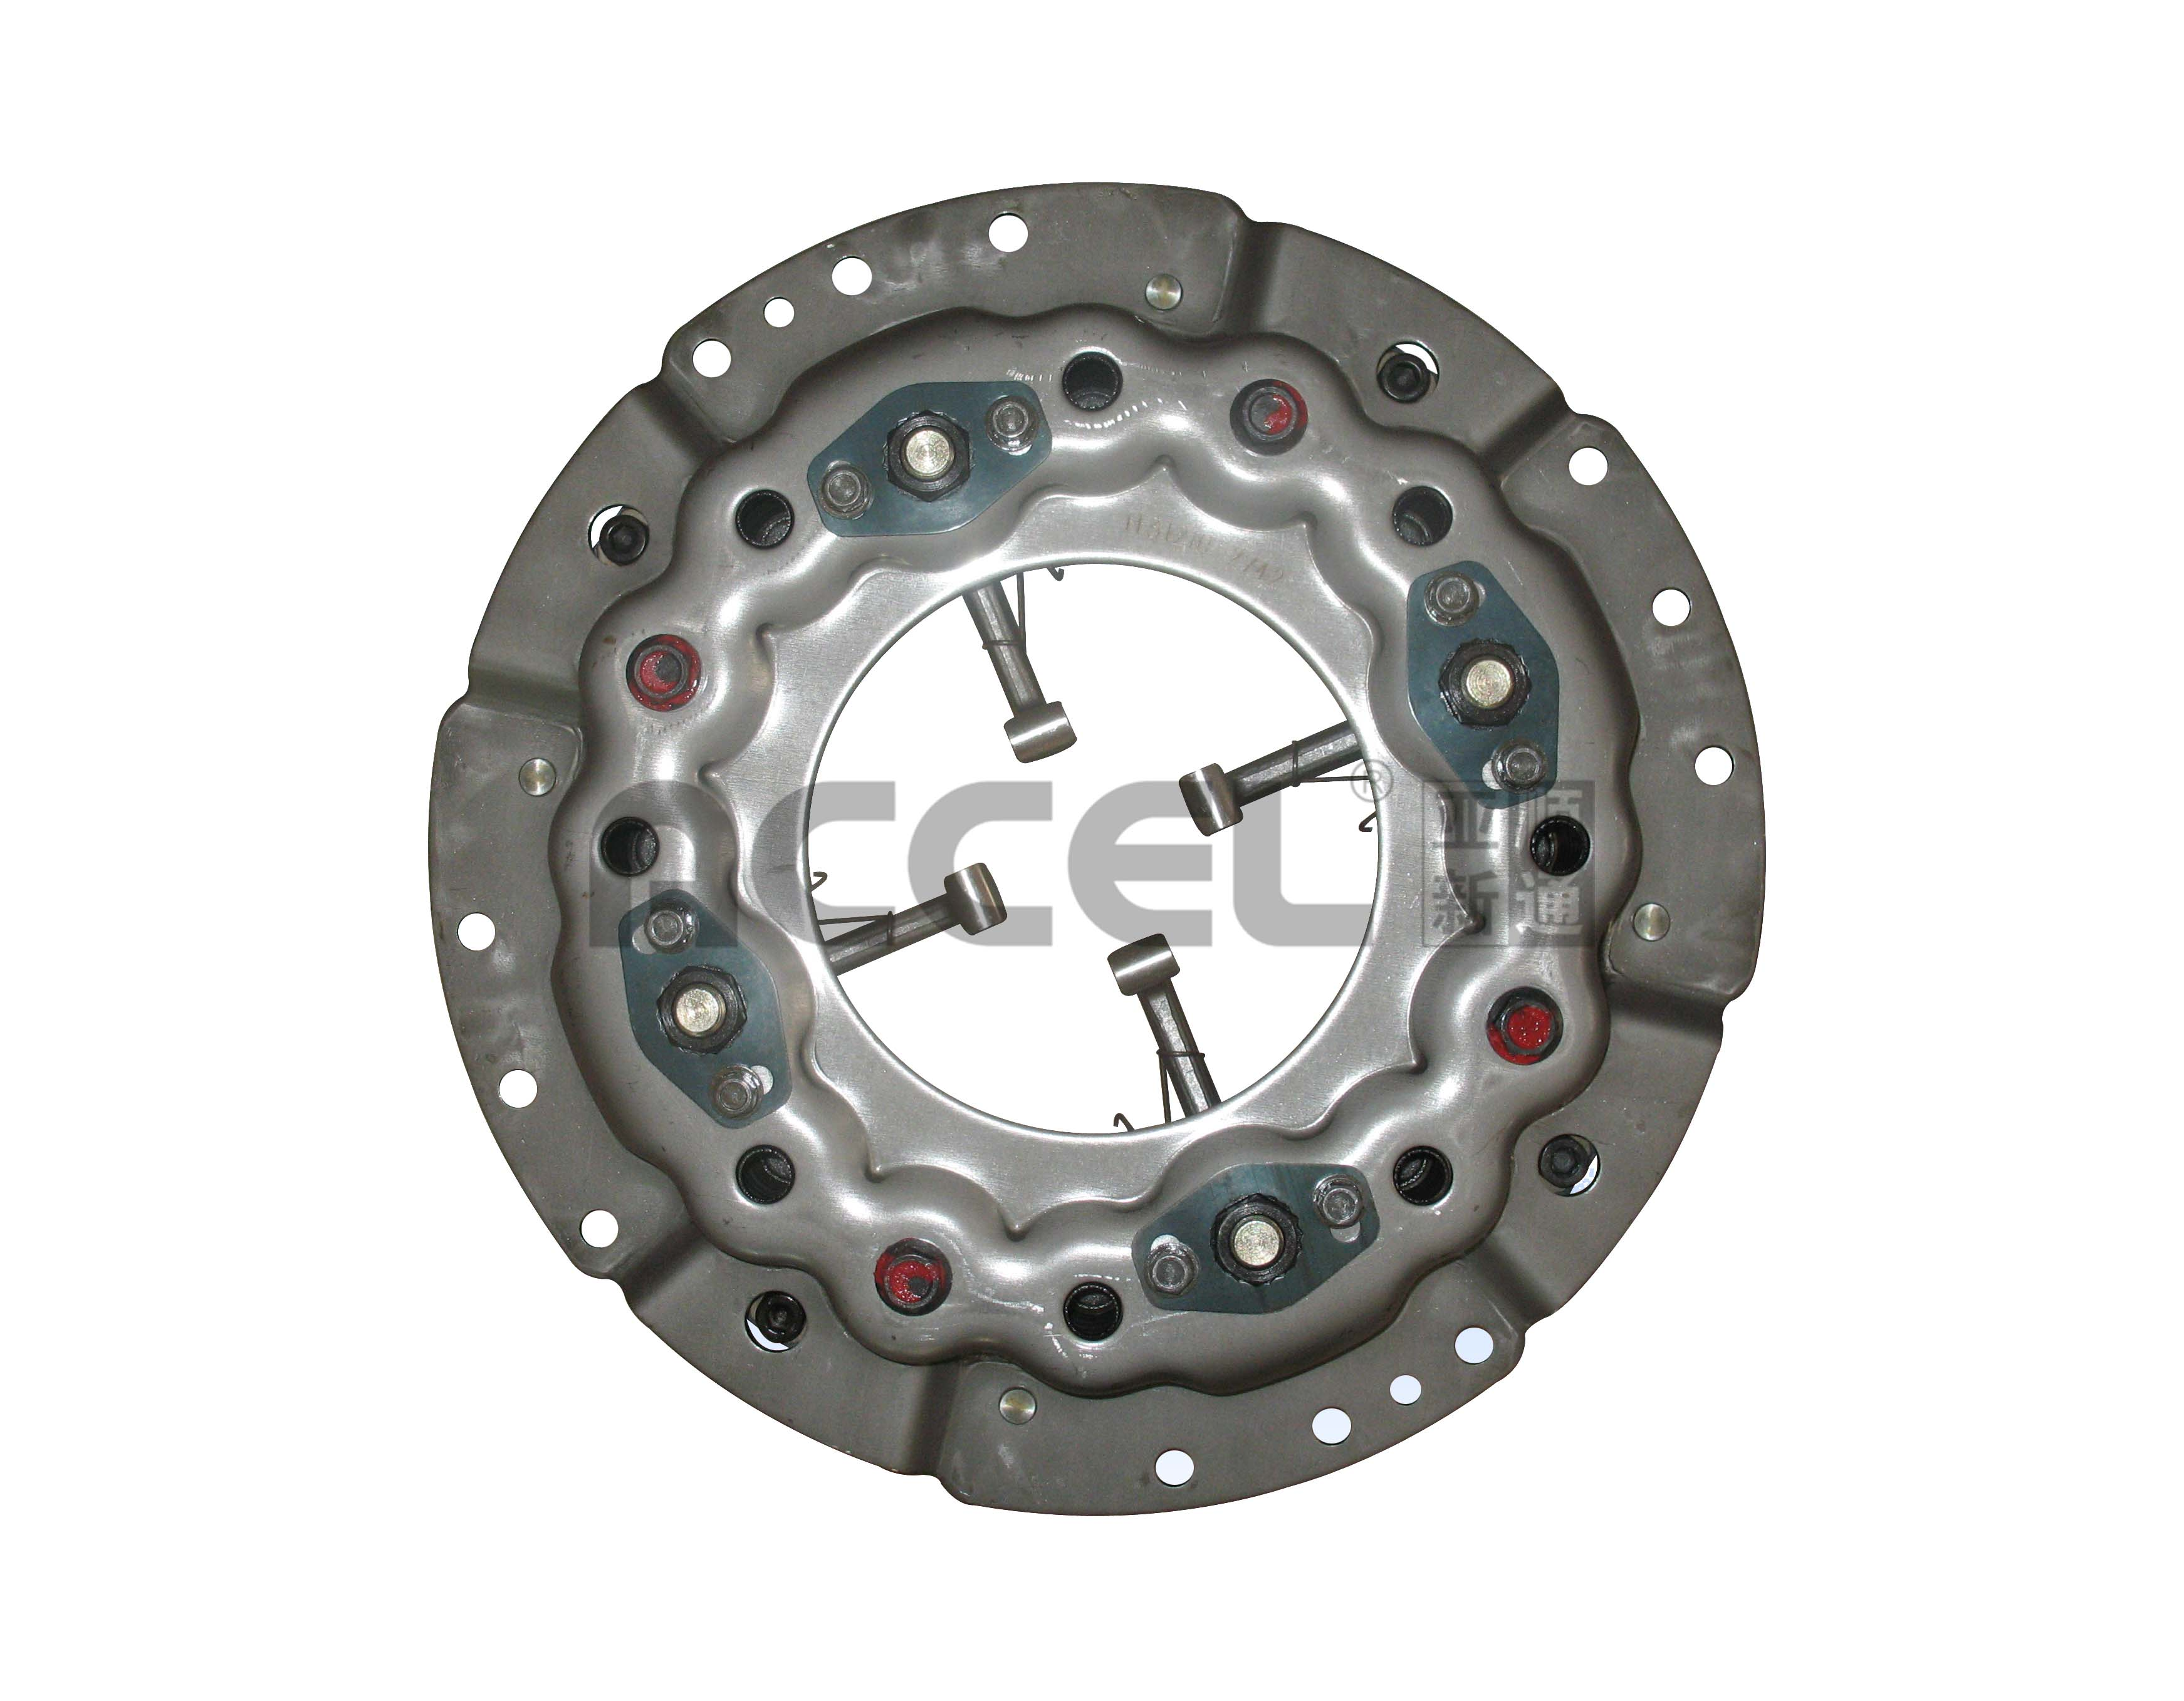 Clutch Cover/OE:31210-2370/380*220*405/CHN-003/HINO/LY152/HNC541